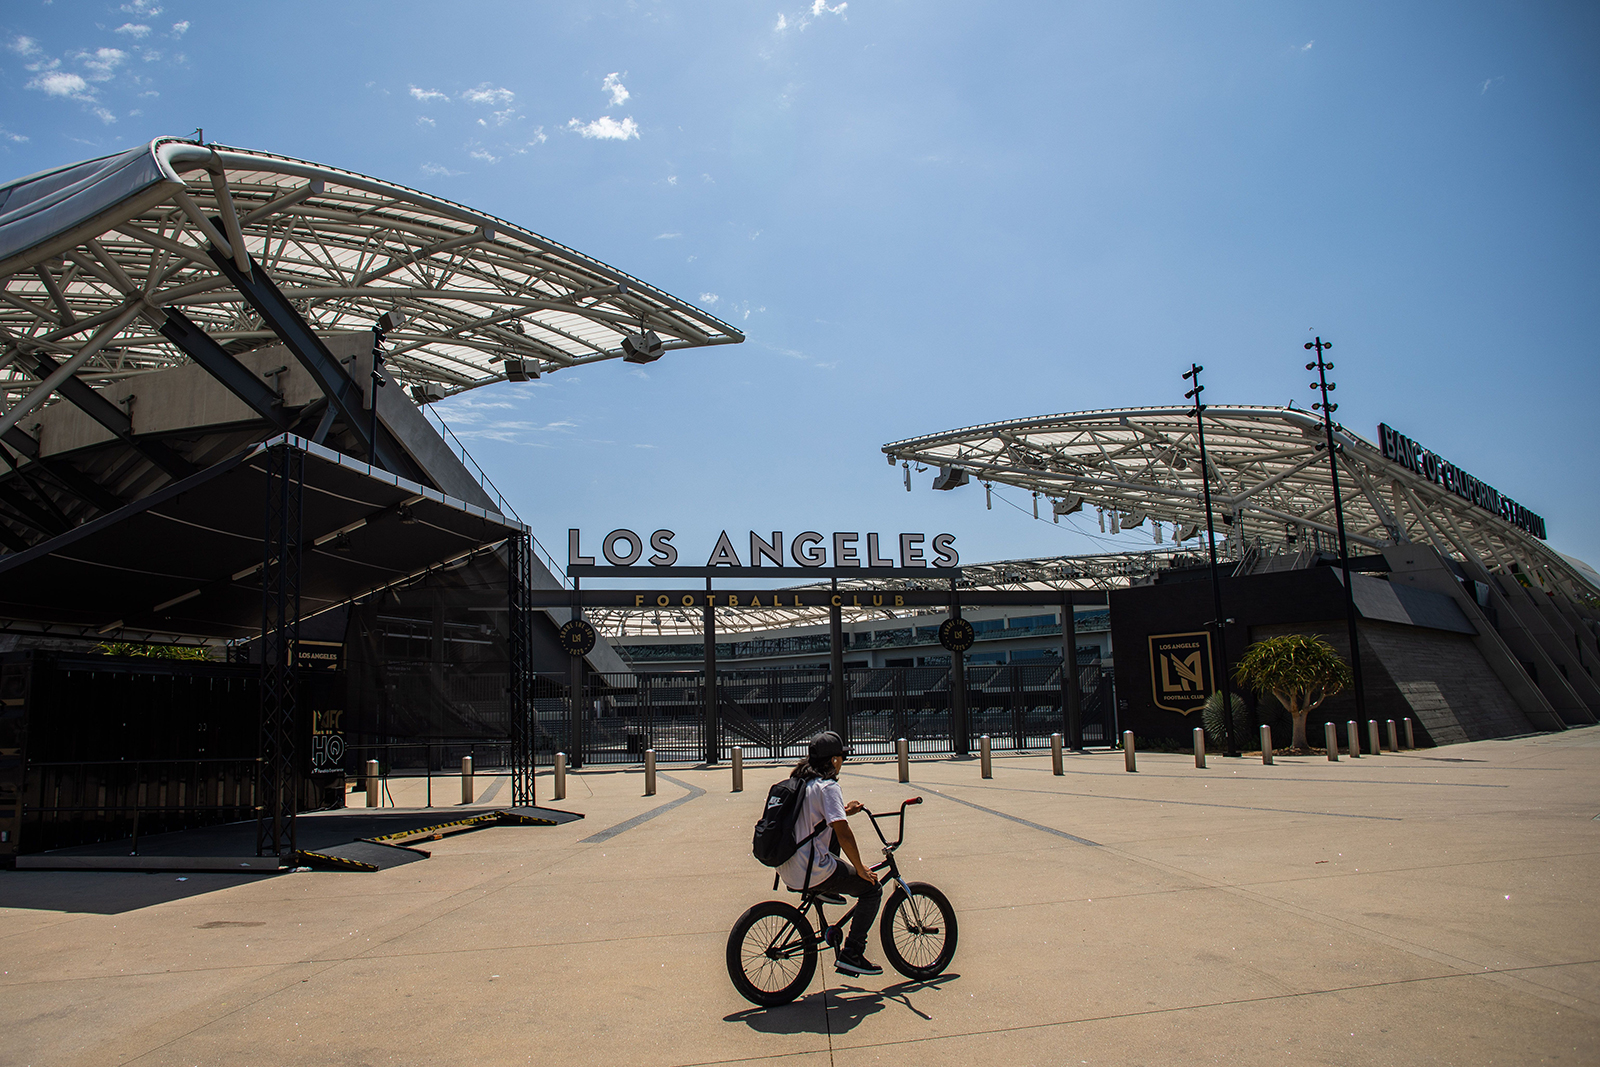 A young man rides his bike in front of the Banc of California Stadium in the neighborhood of Los Angeles on May 9.